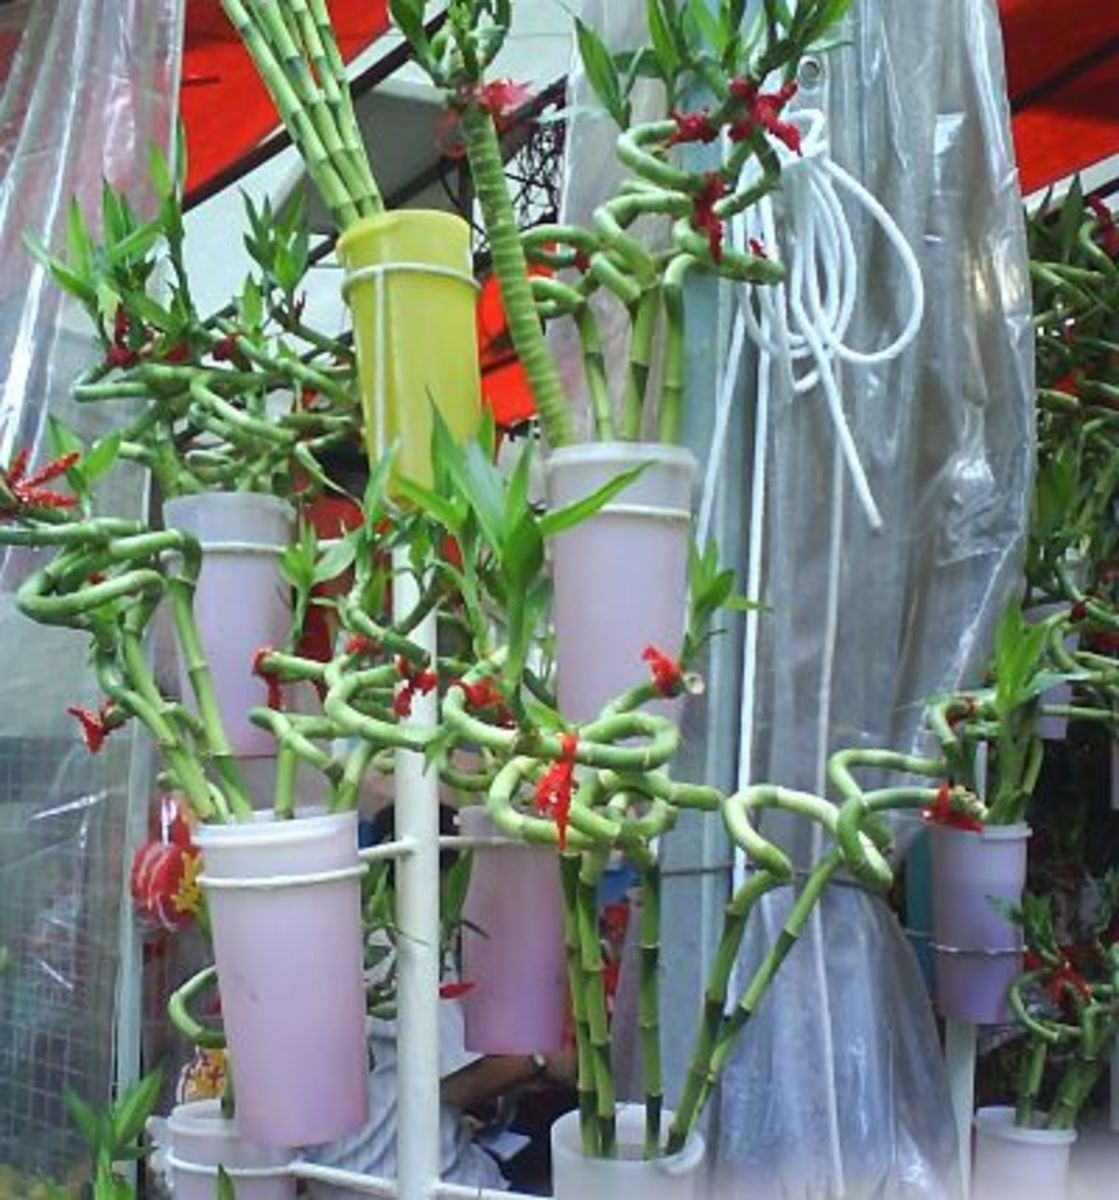 Fortune bamboo, curly-shaped